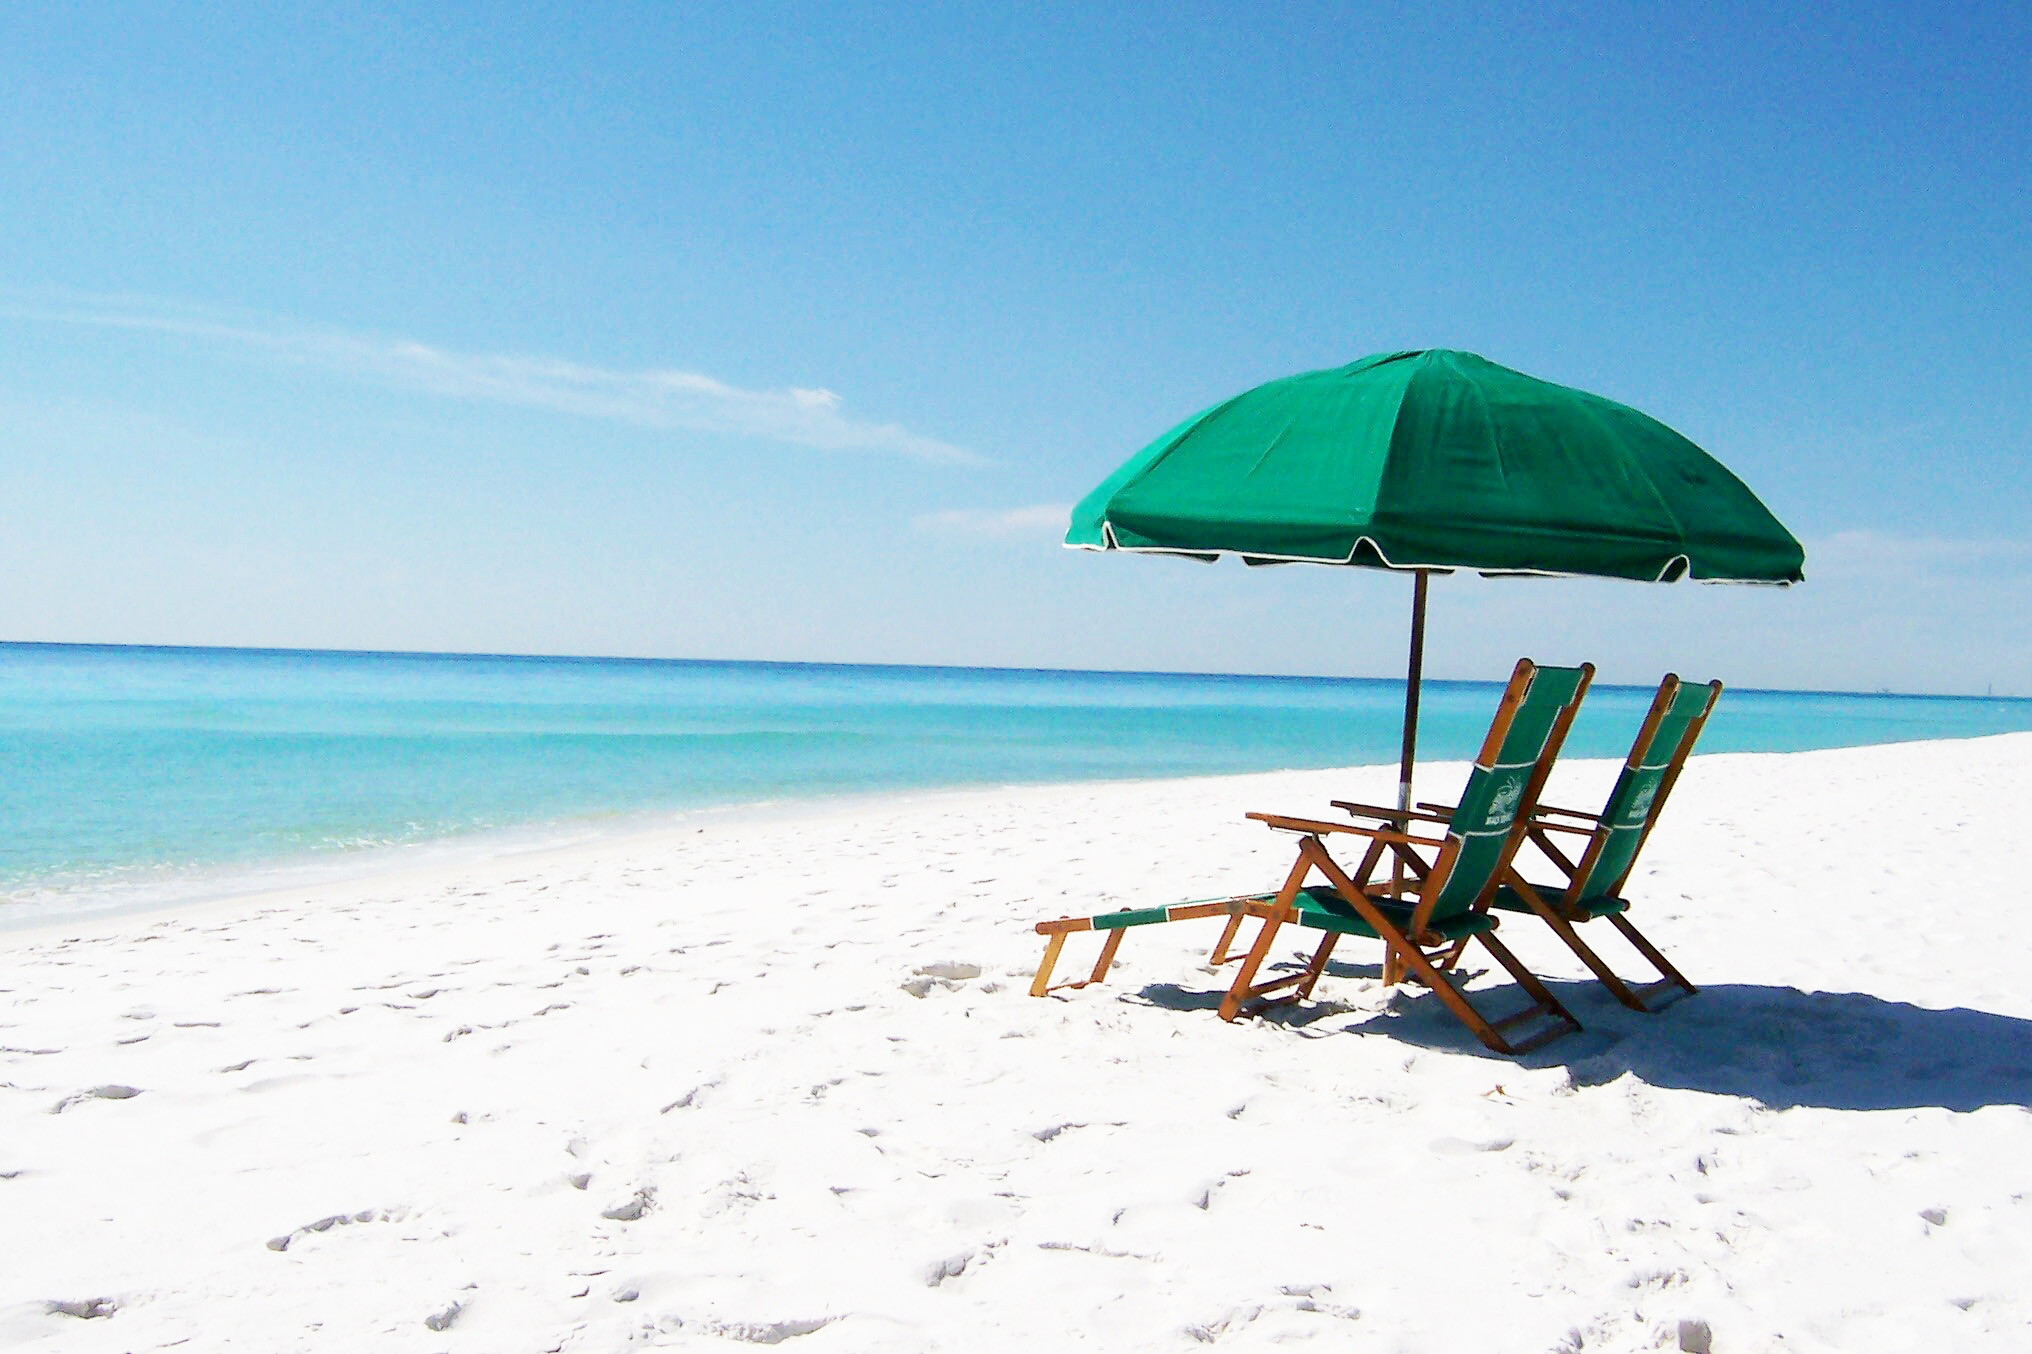 Beach Service Included with Reservation - Sandpiper Cove Resort 9106 Holiday Isle Destin Florida Vacation Rentals